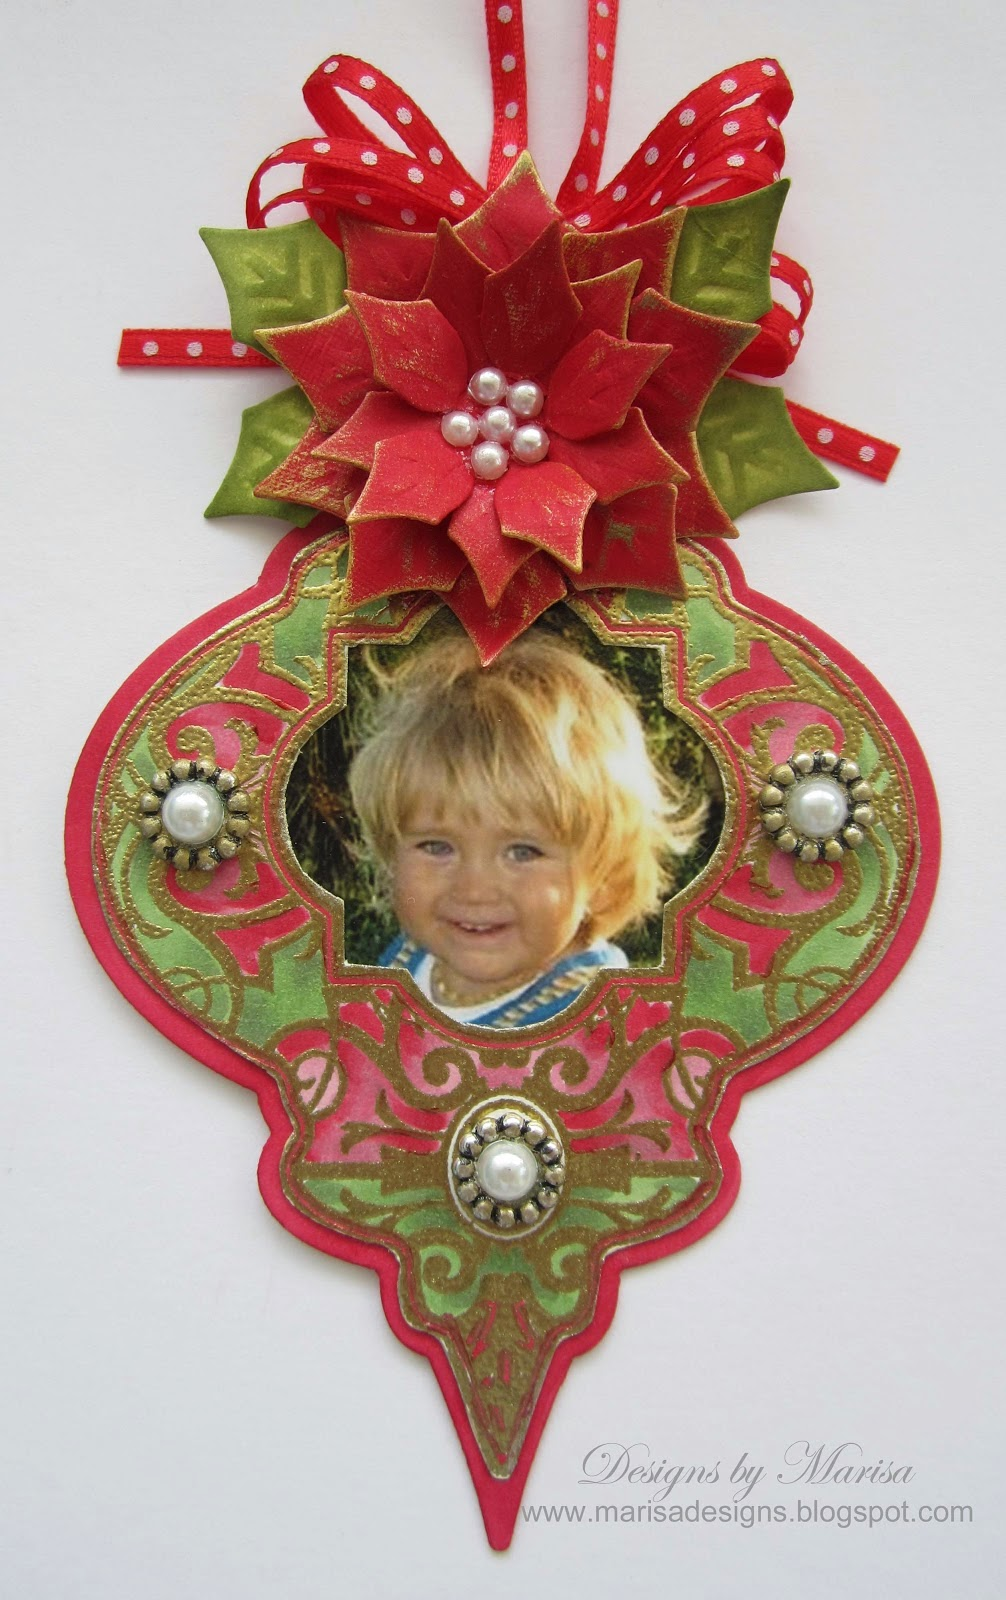 Paper craft christmas ornament ideas creative art and for 2 year old christmas ornaments crafts